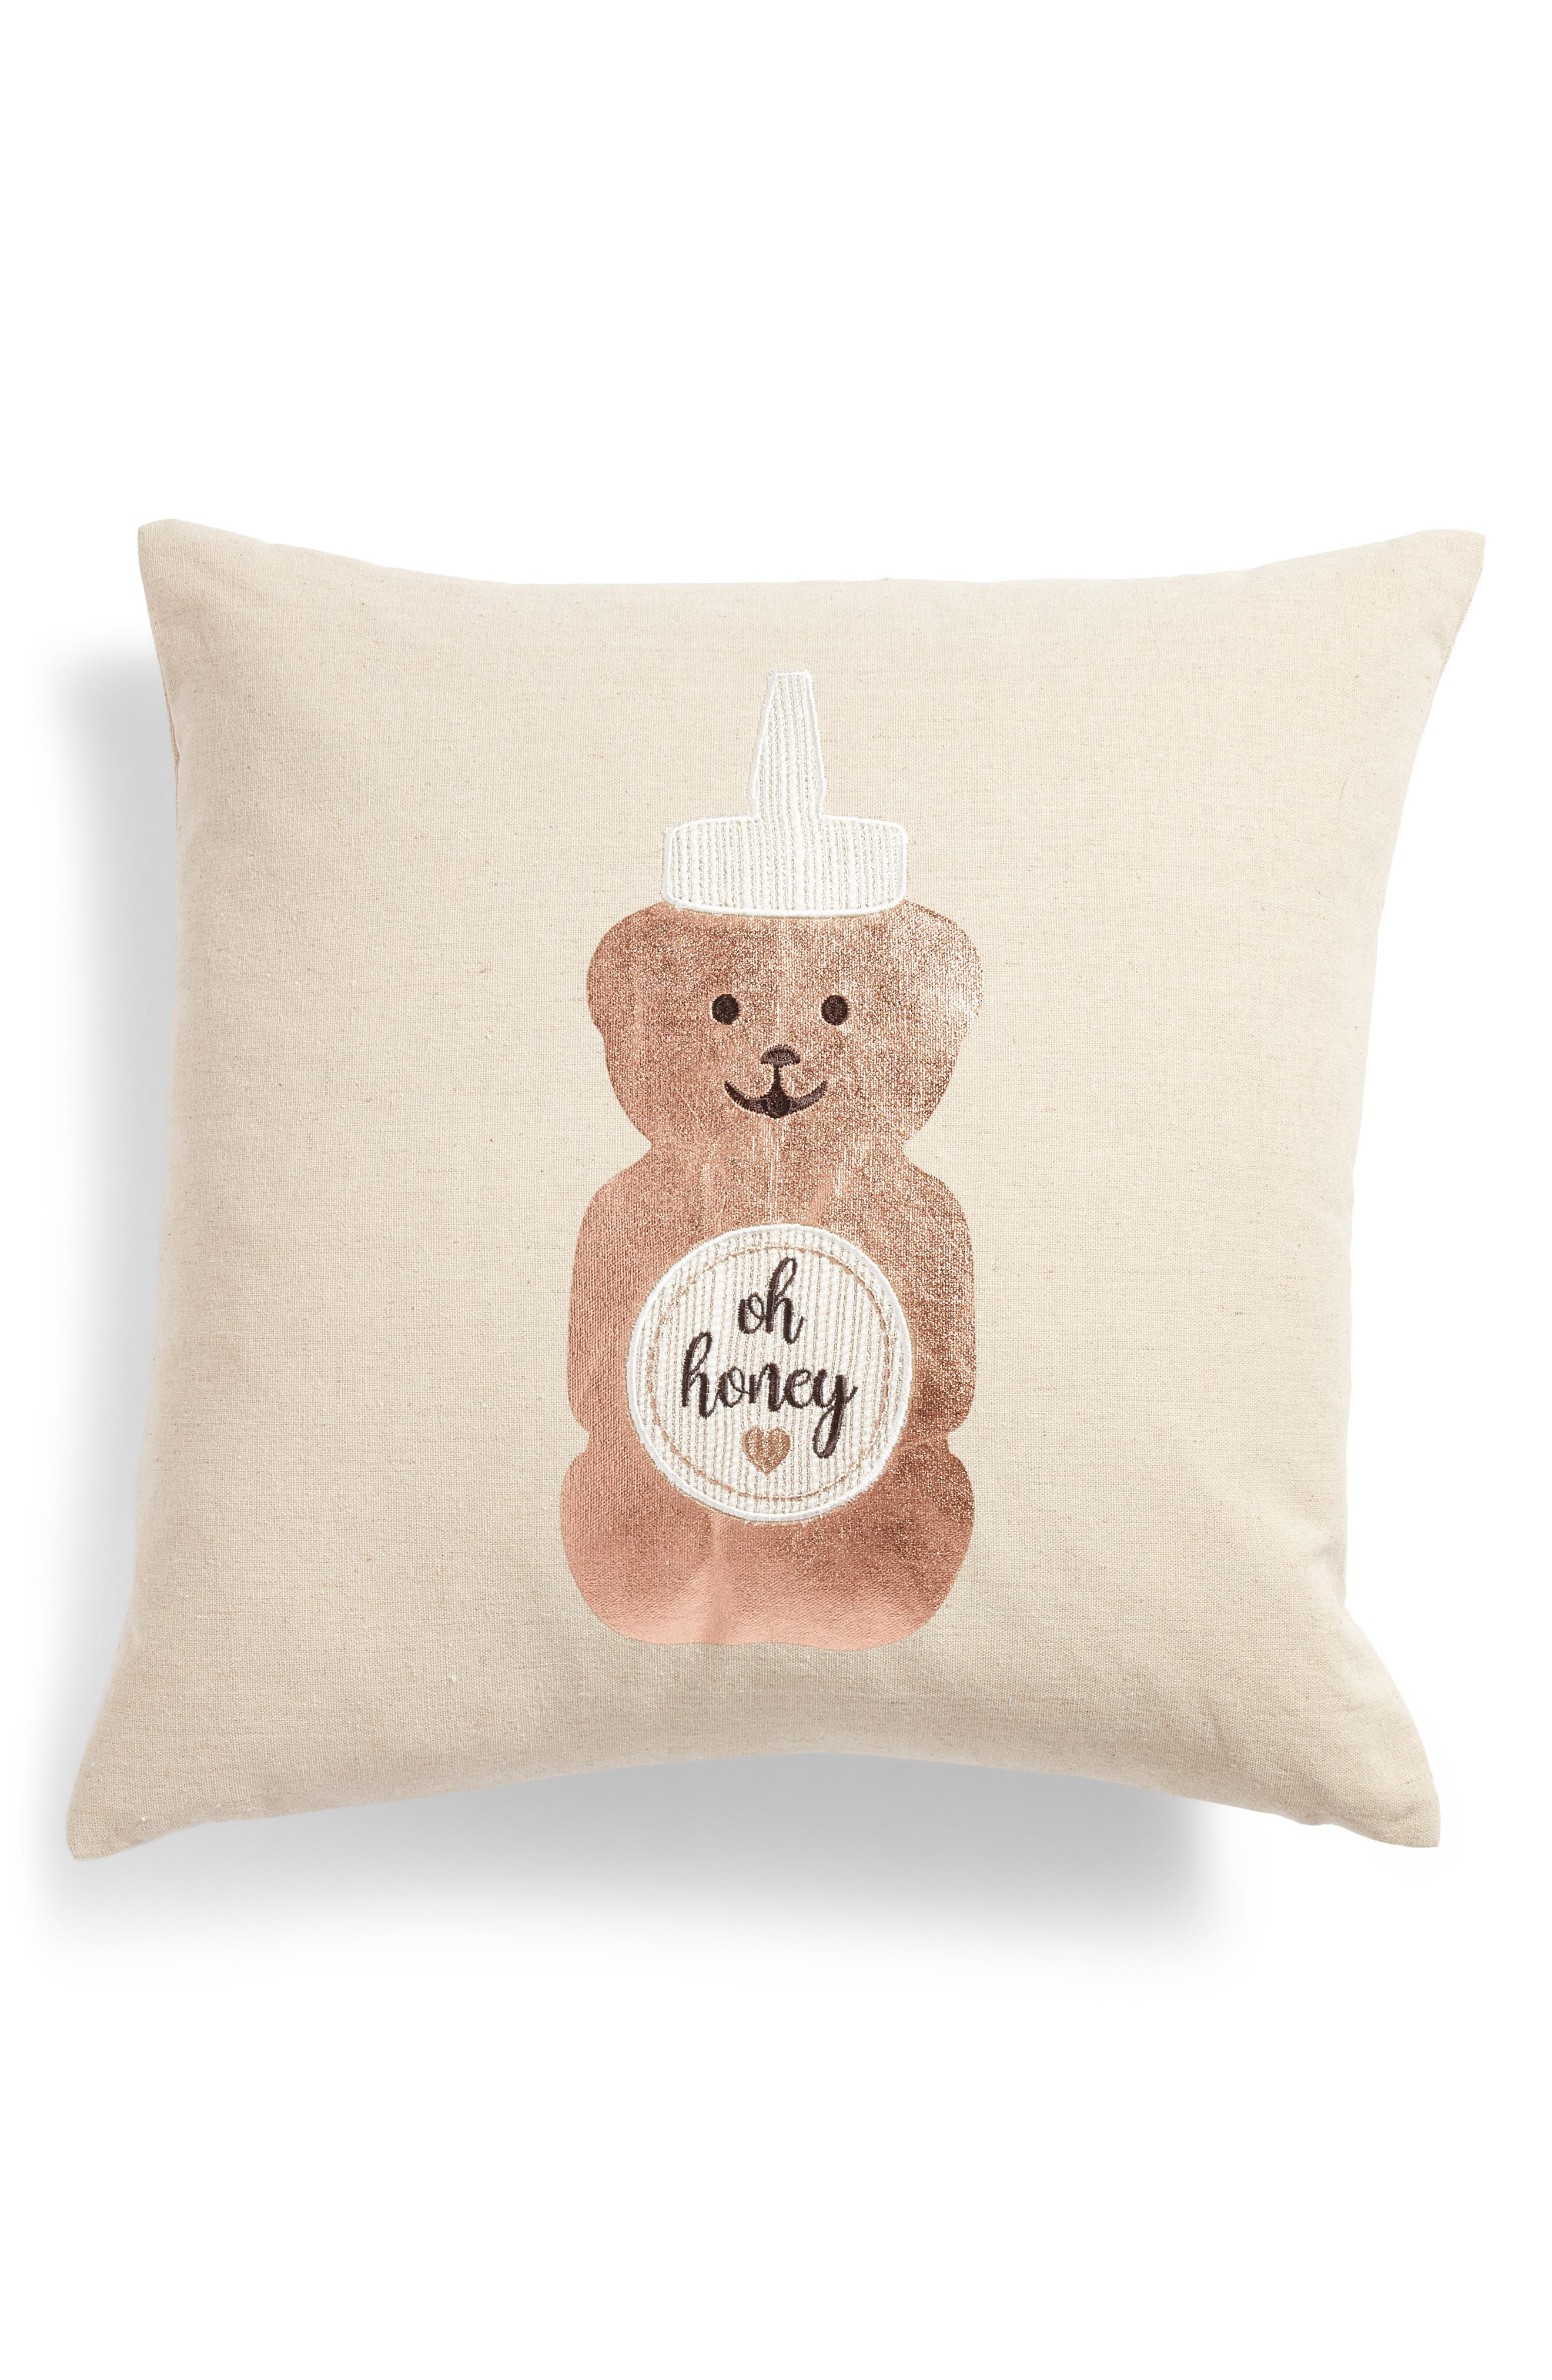 Oh Honey Accent Pillow,                             Main thumbnail 1, color,                             020